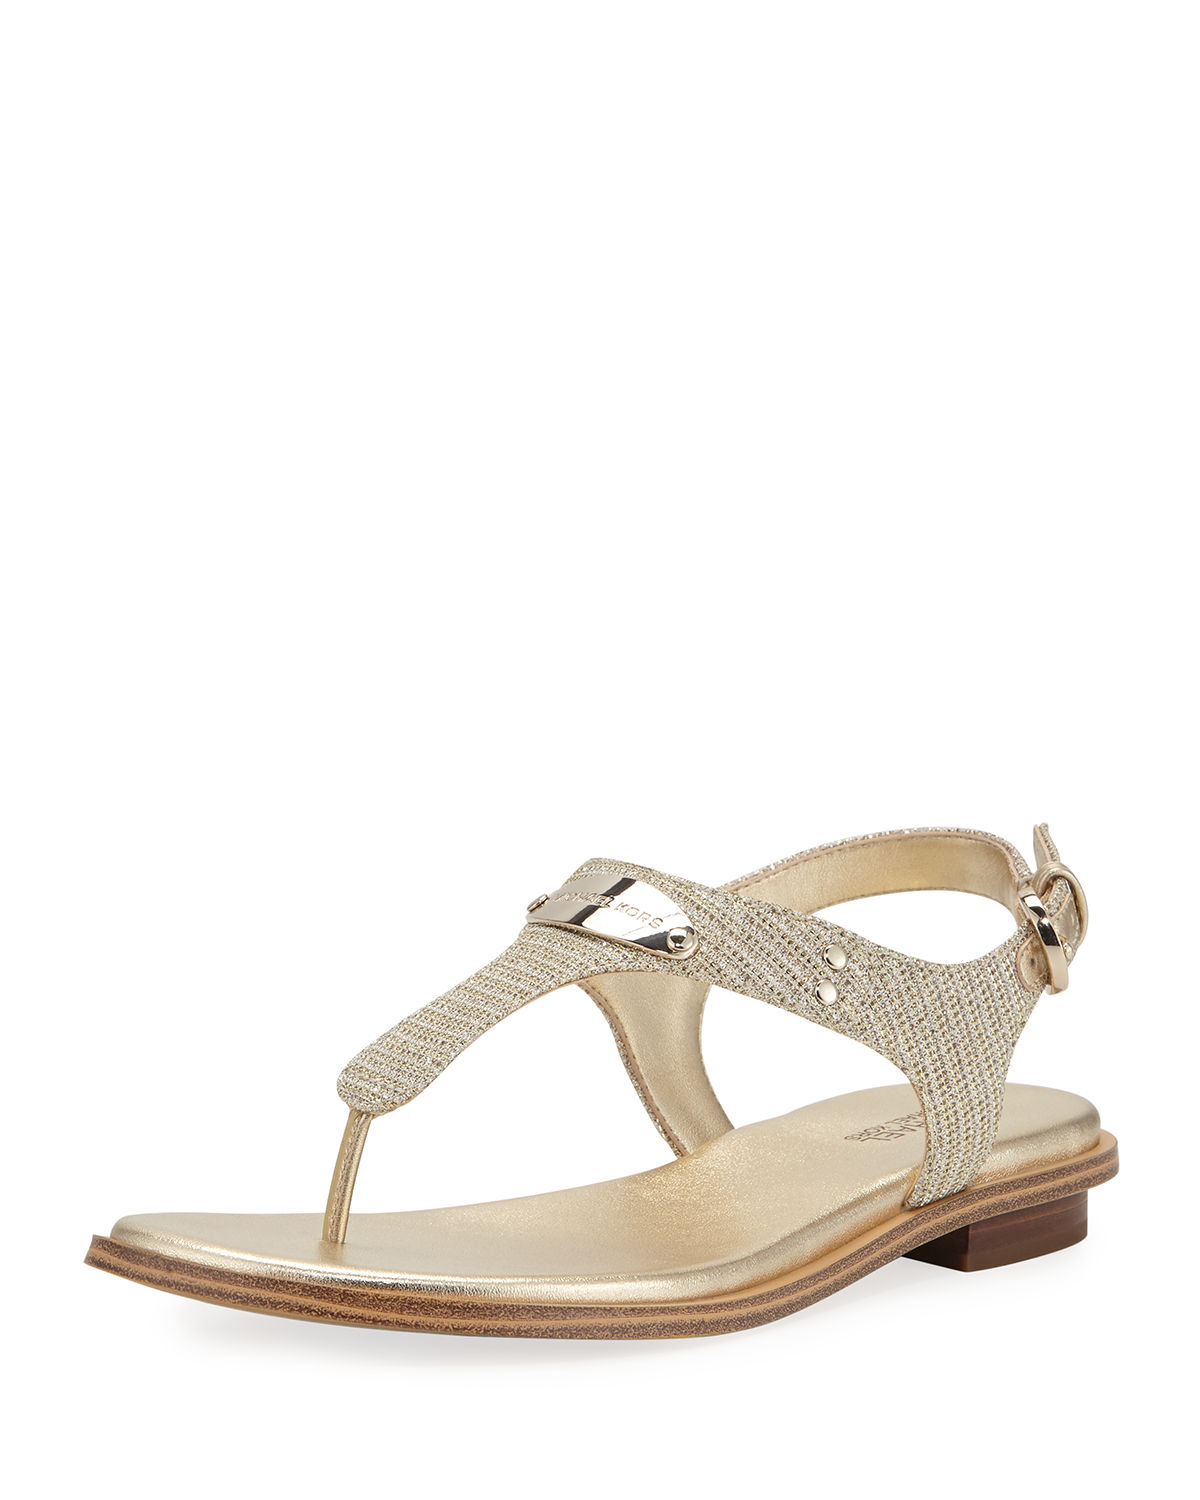 552cd93683c MICHAEL Michael Kors MK Plate Metallic Thong Sandals